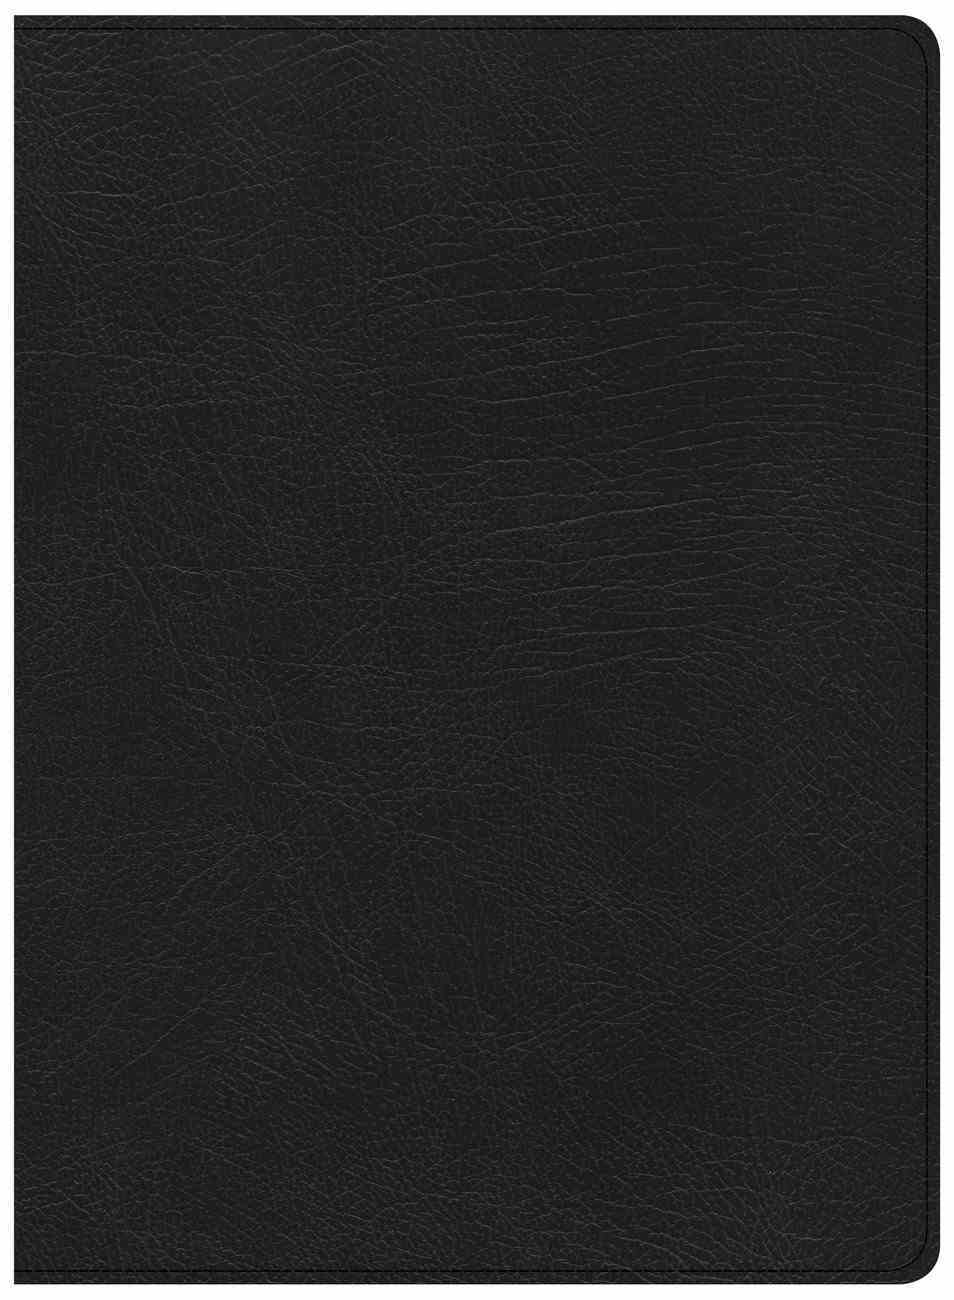 CSB Life Essentials Study Bible Black (Black Letter Edition) Genuine Leather